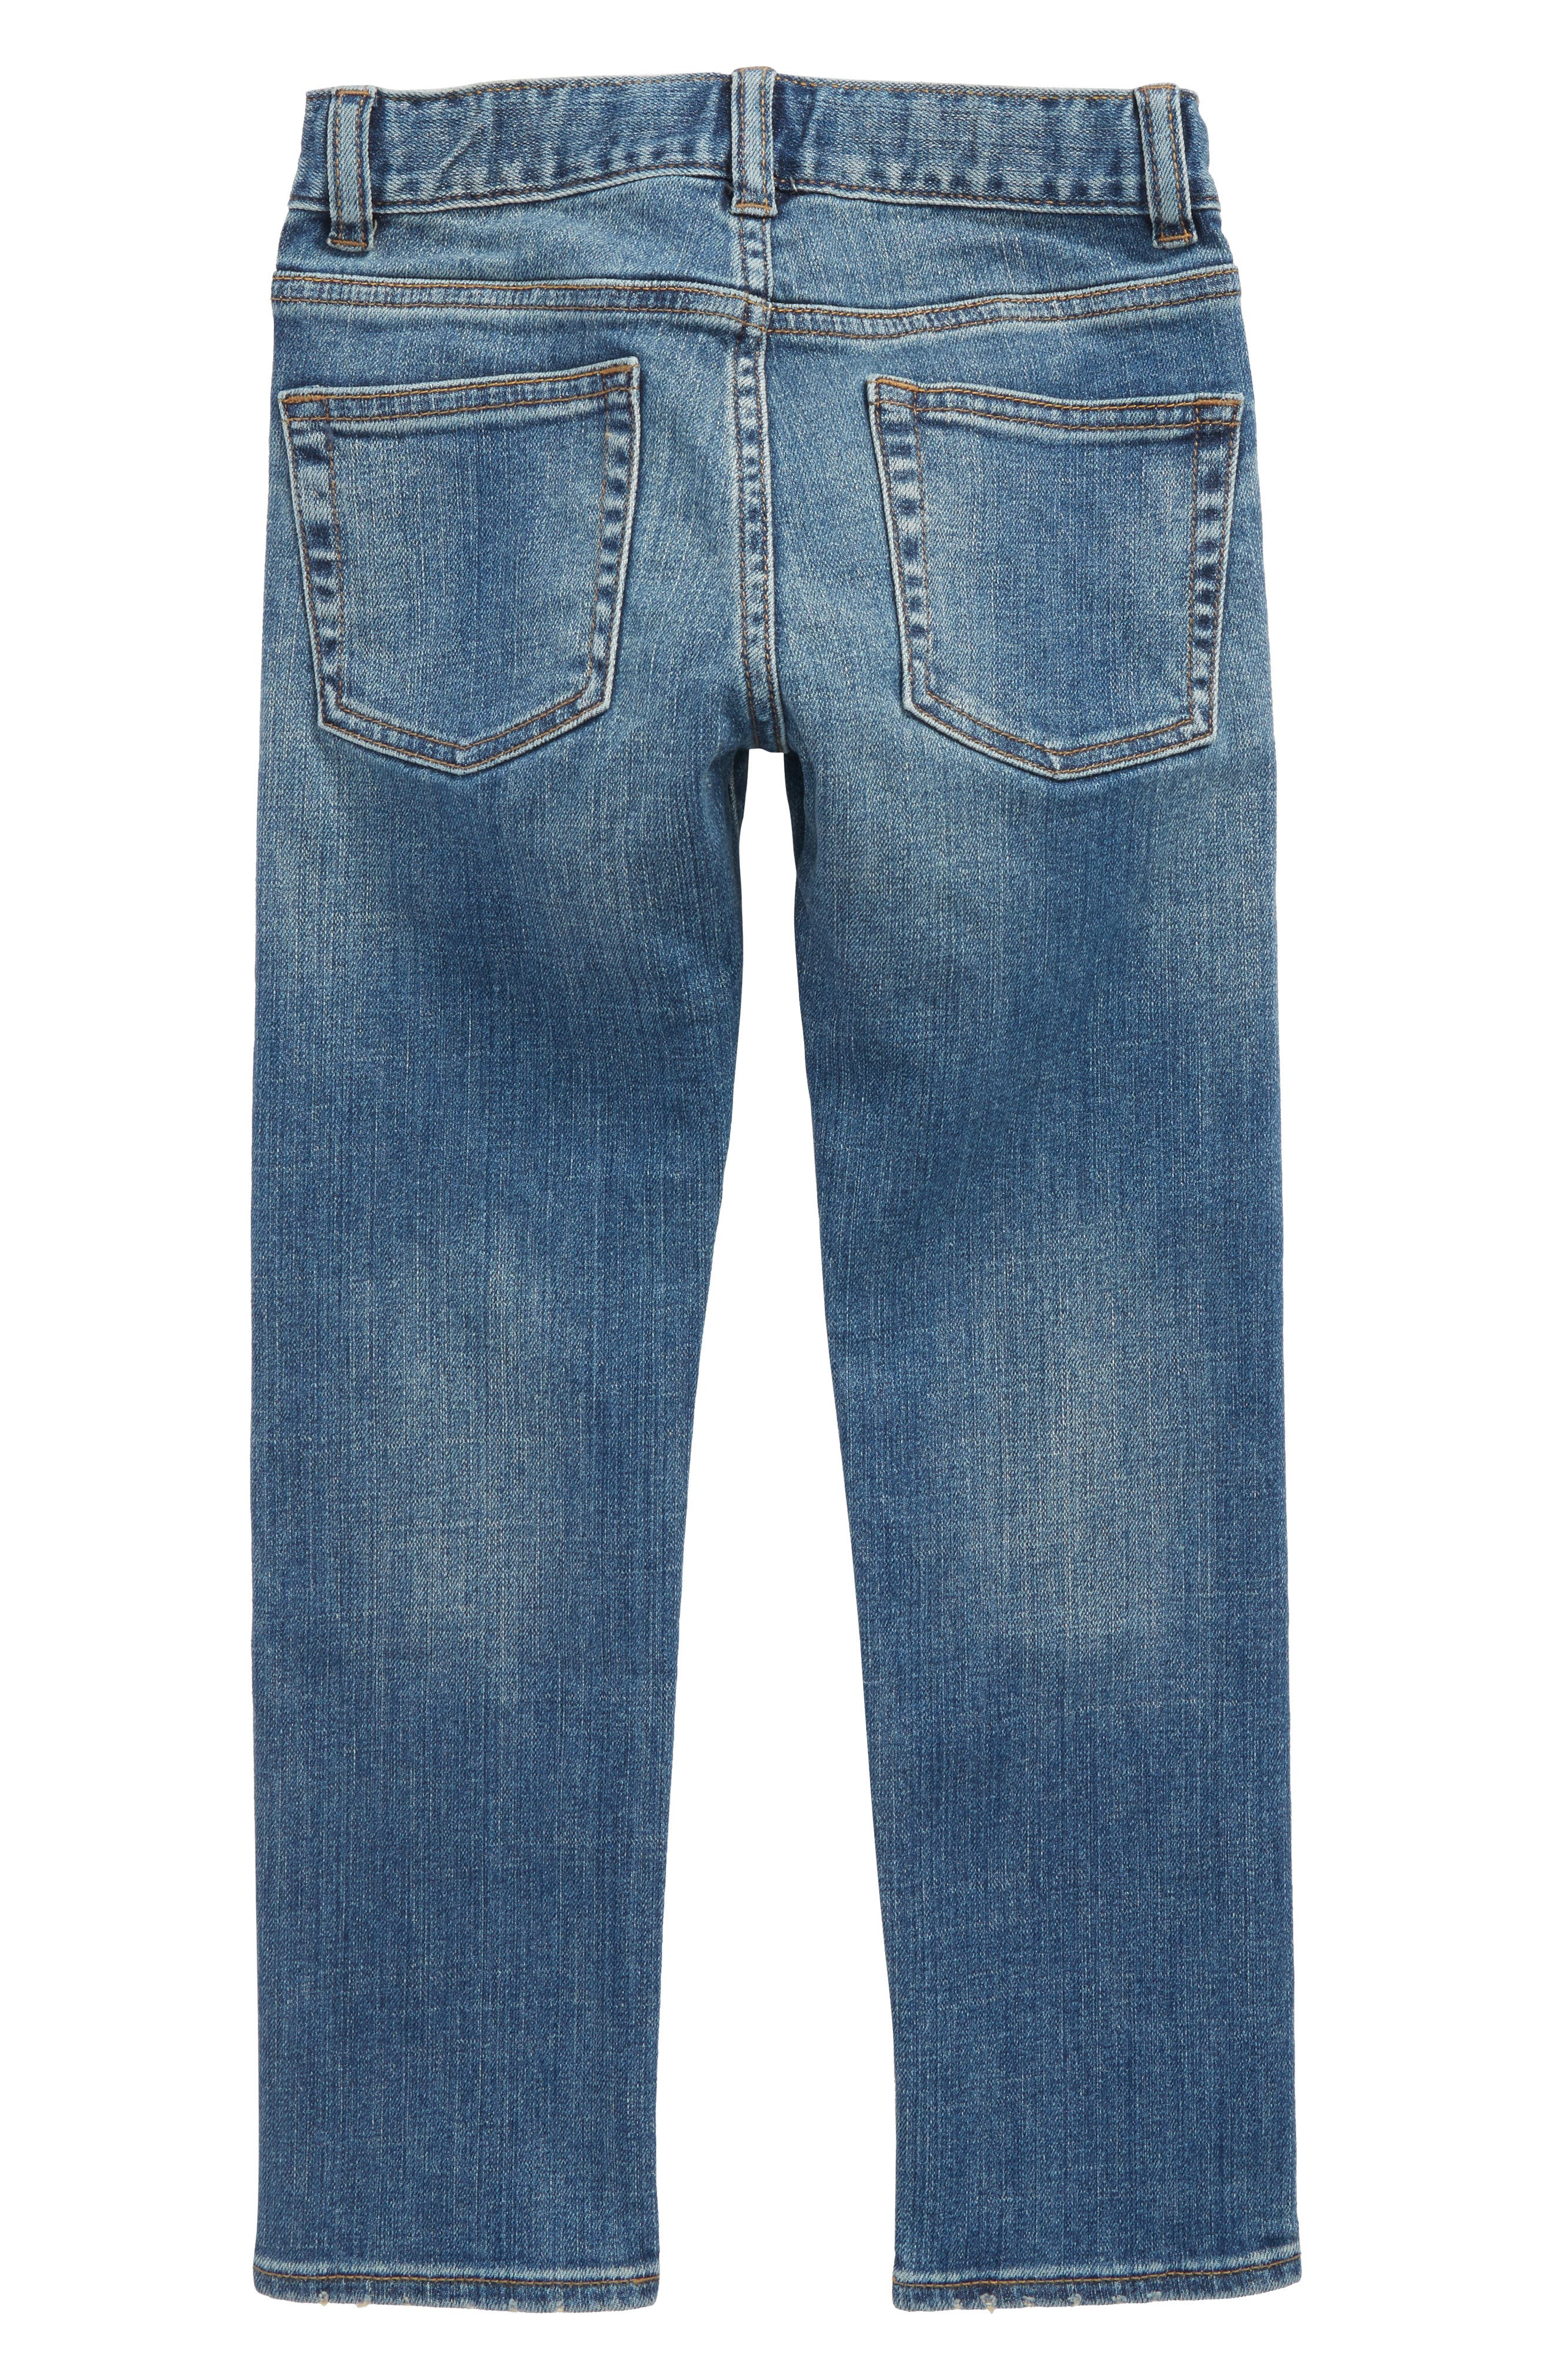 Slim Fit Rugged Wash Jeans,                             Alternate thumbnail 2, color,                             400